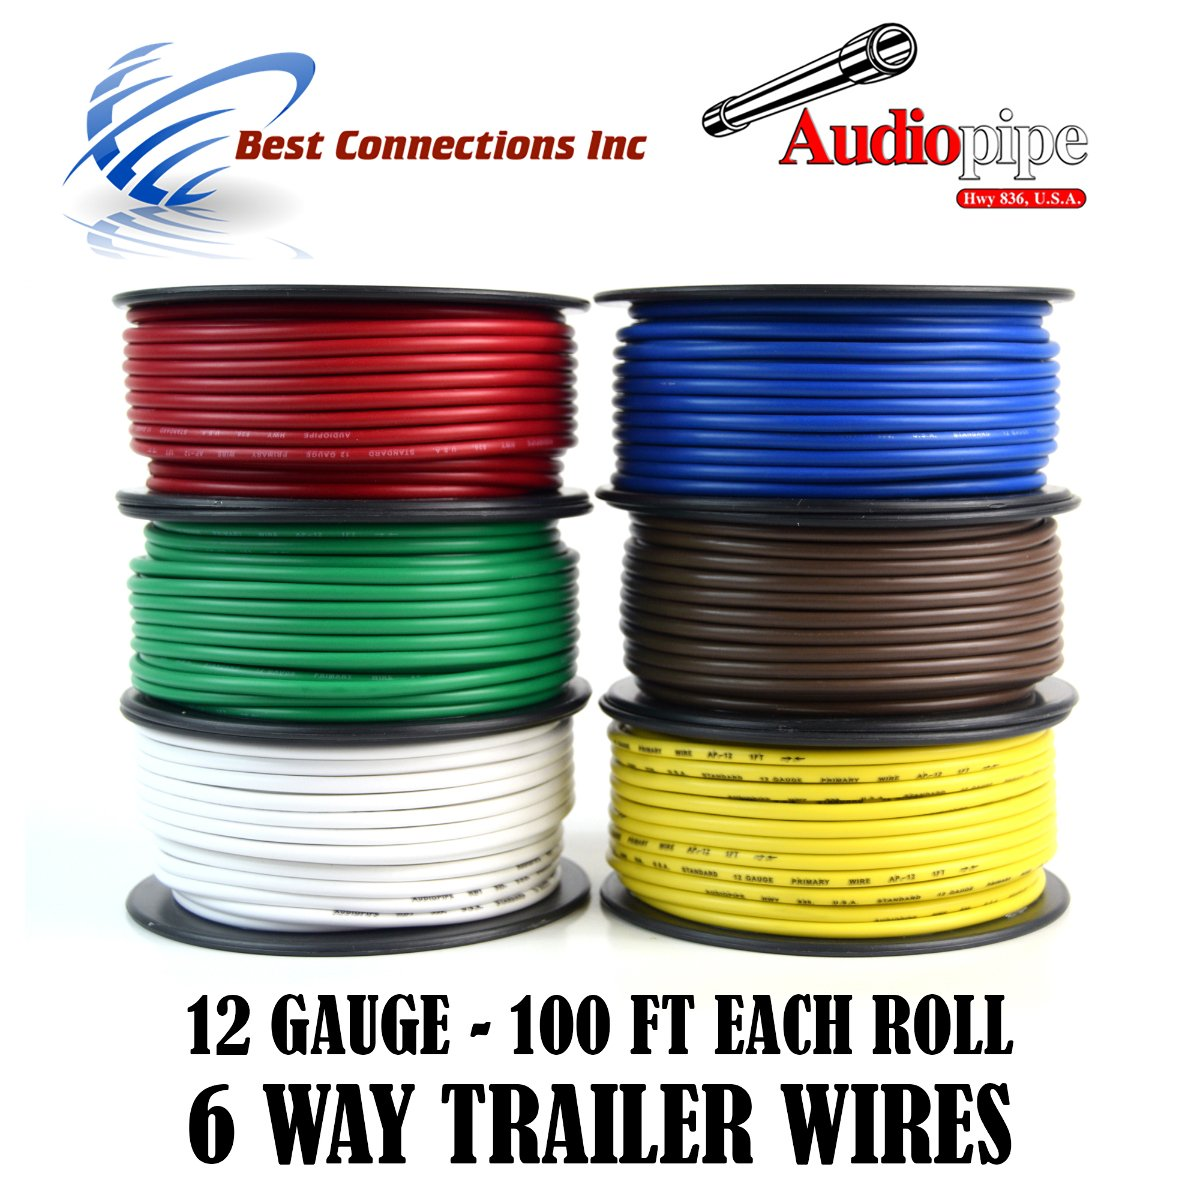 Trailer Wire Light Cable for Harness 6 Way Cord 12 Gauge - 100ft roll - 6 Rolls